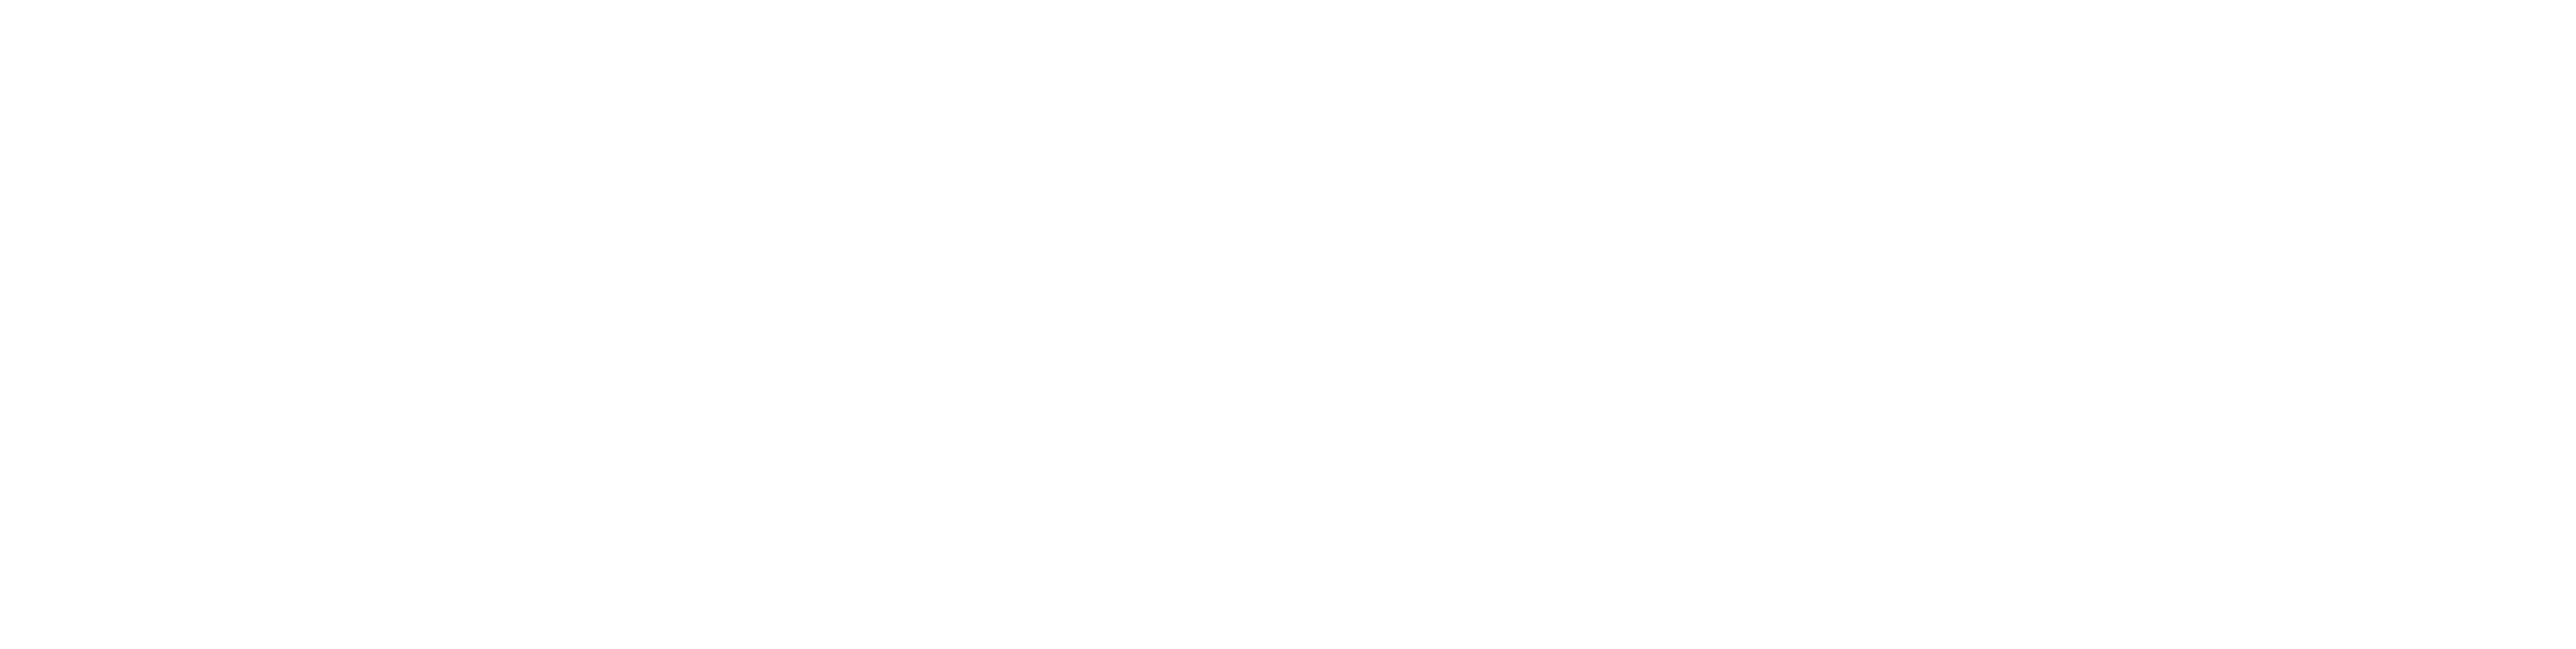 vevo logo website